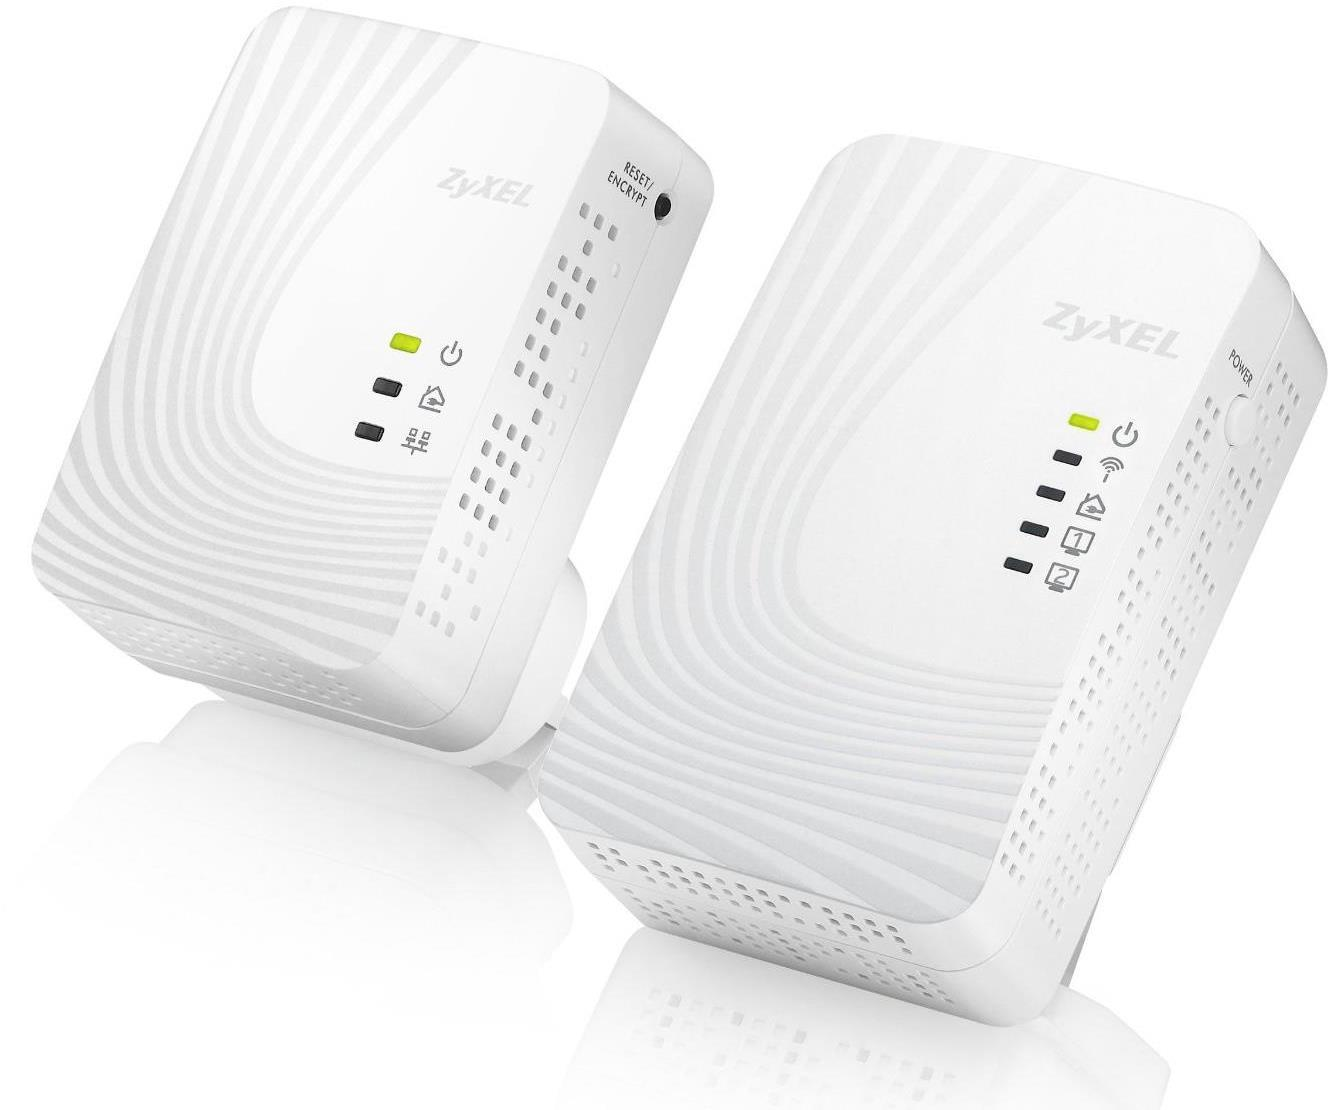 Zyxel PLA4231 500Mbps Mini Powerline Wireless N300 Extender Kit PLA4231 + PLA4201